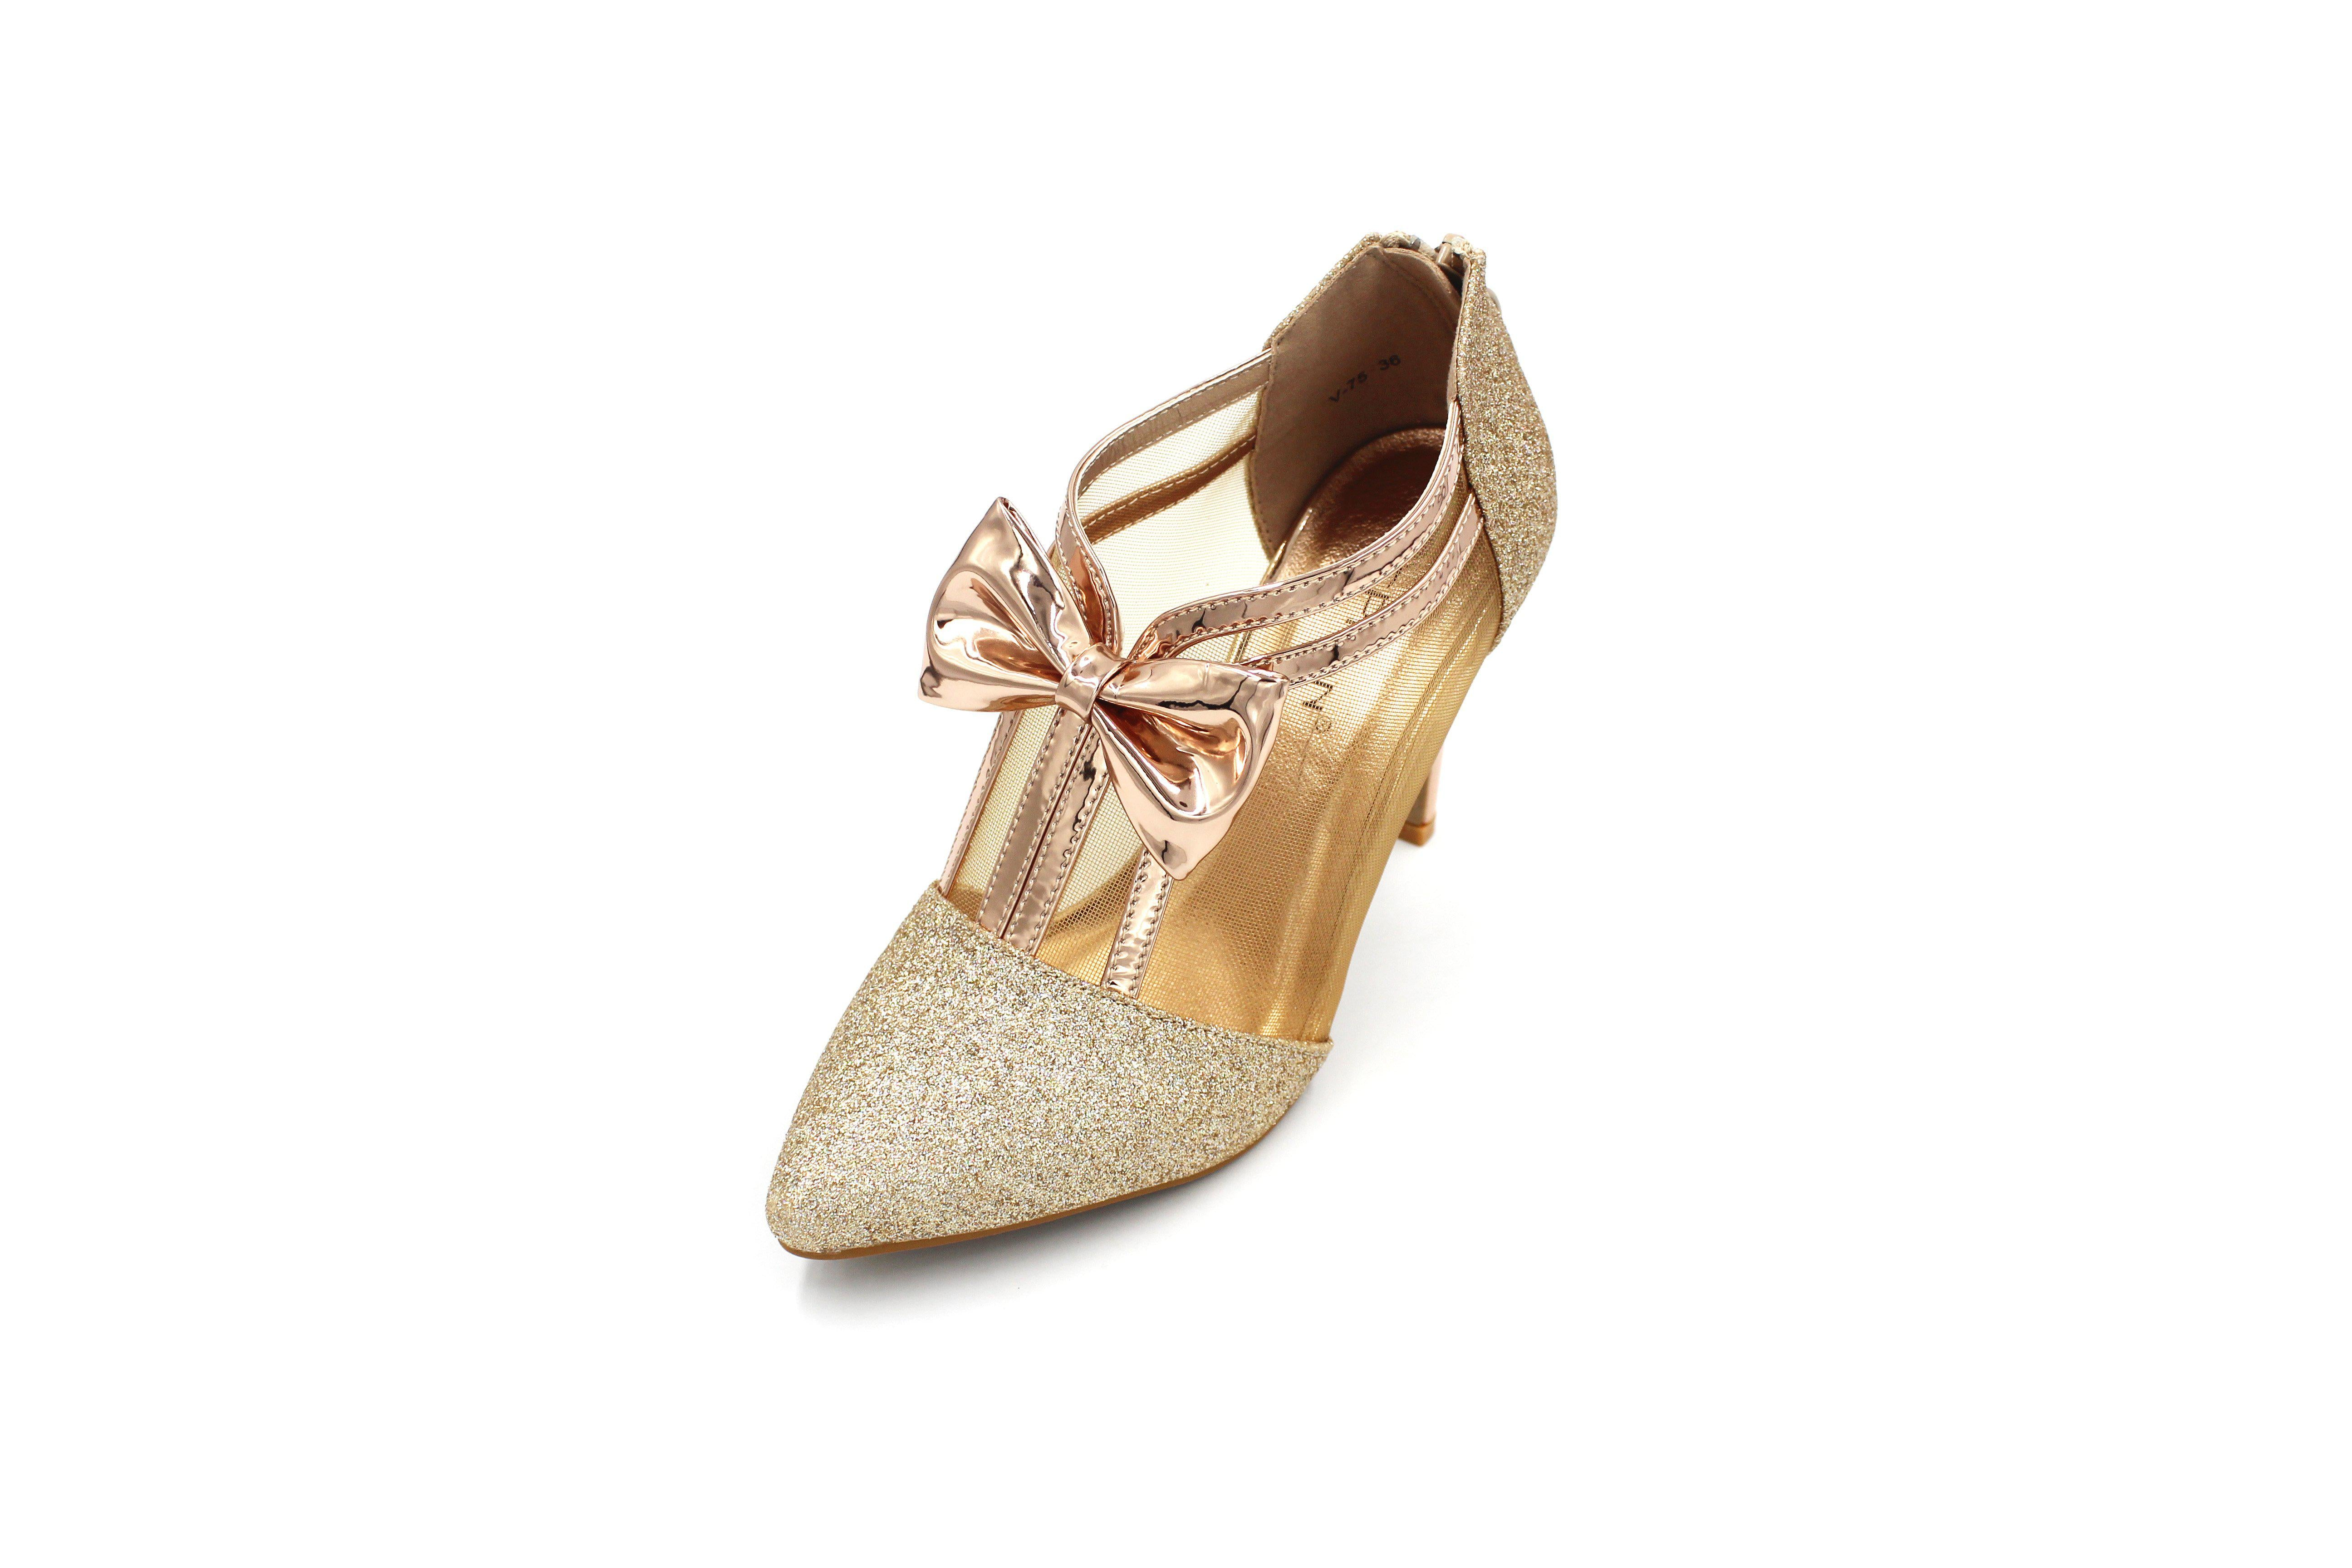 Jasmaira 3.5in. Ankle Heels for Ladies | for Women | Footwear for Formal Parties, Wedding Receptions - Jasmaira